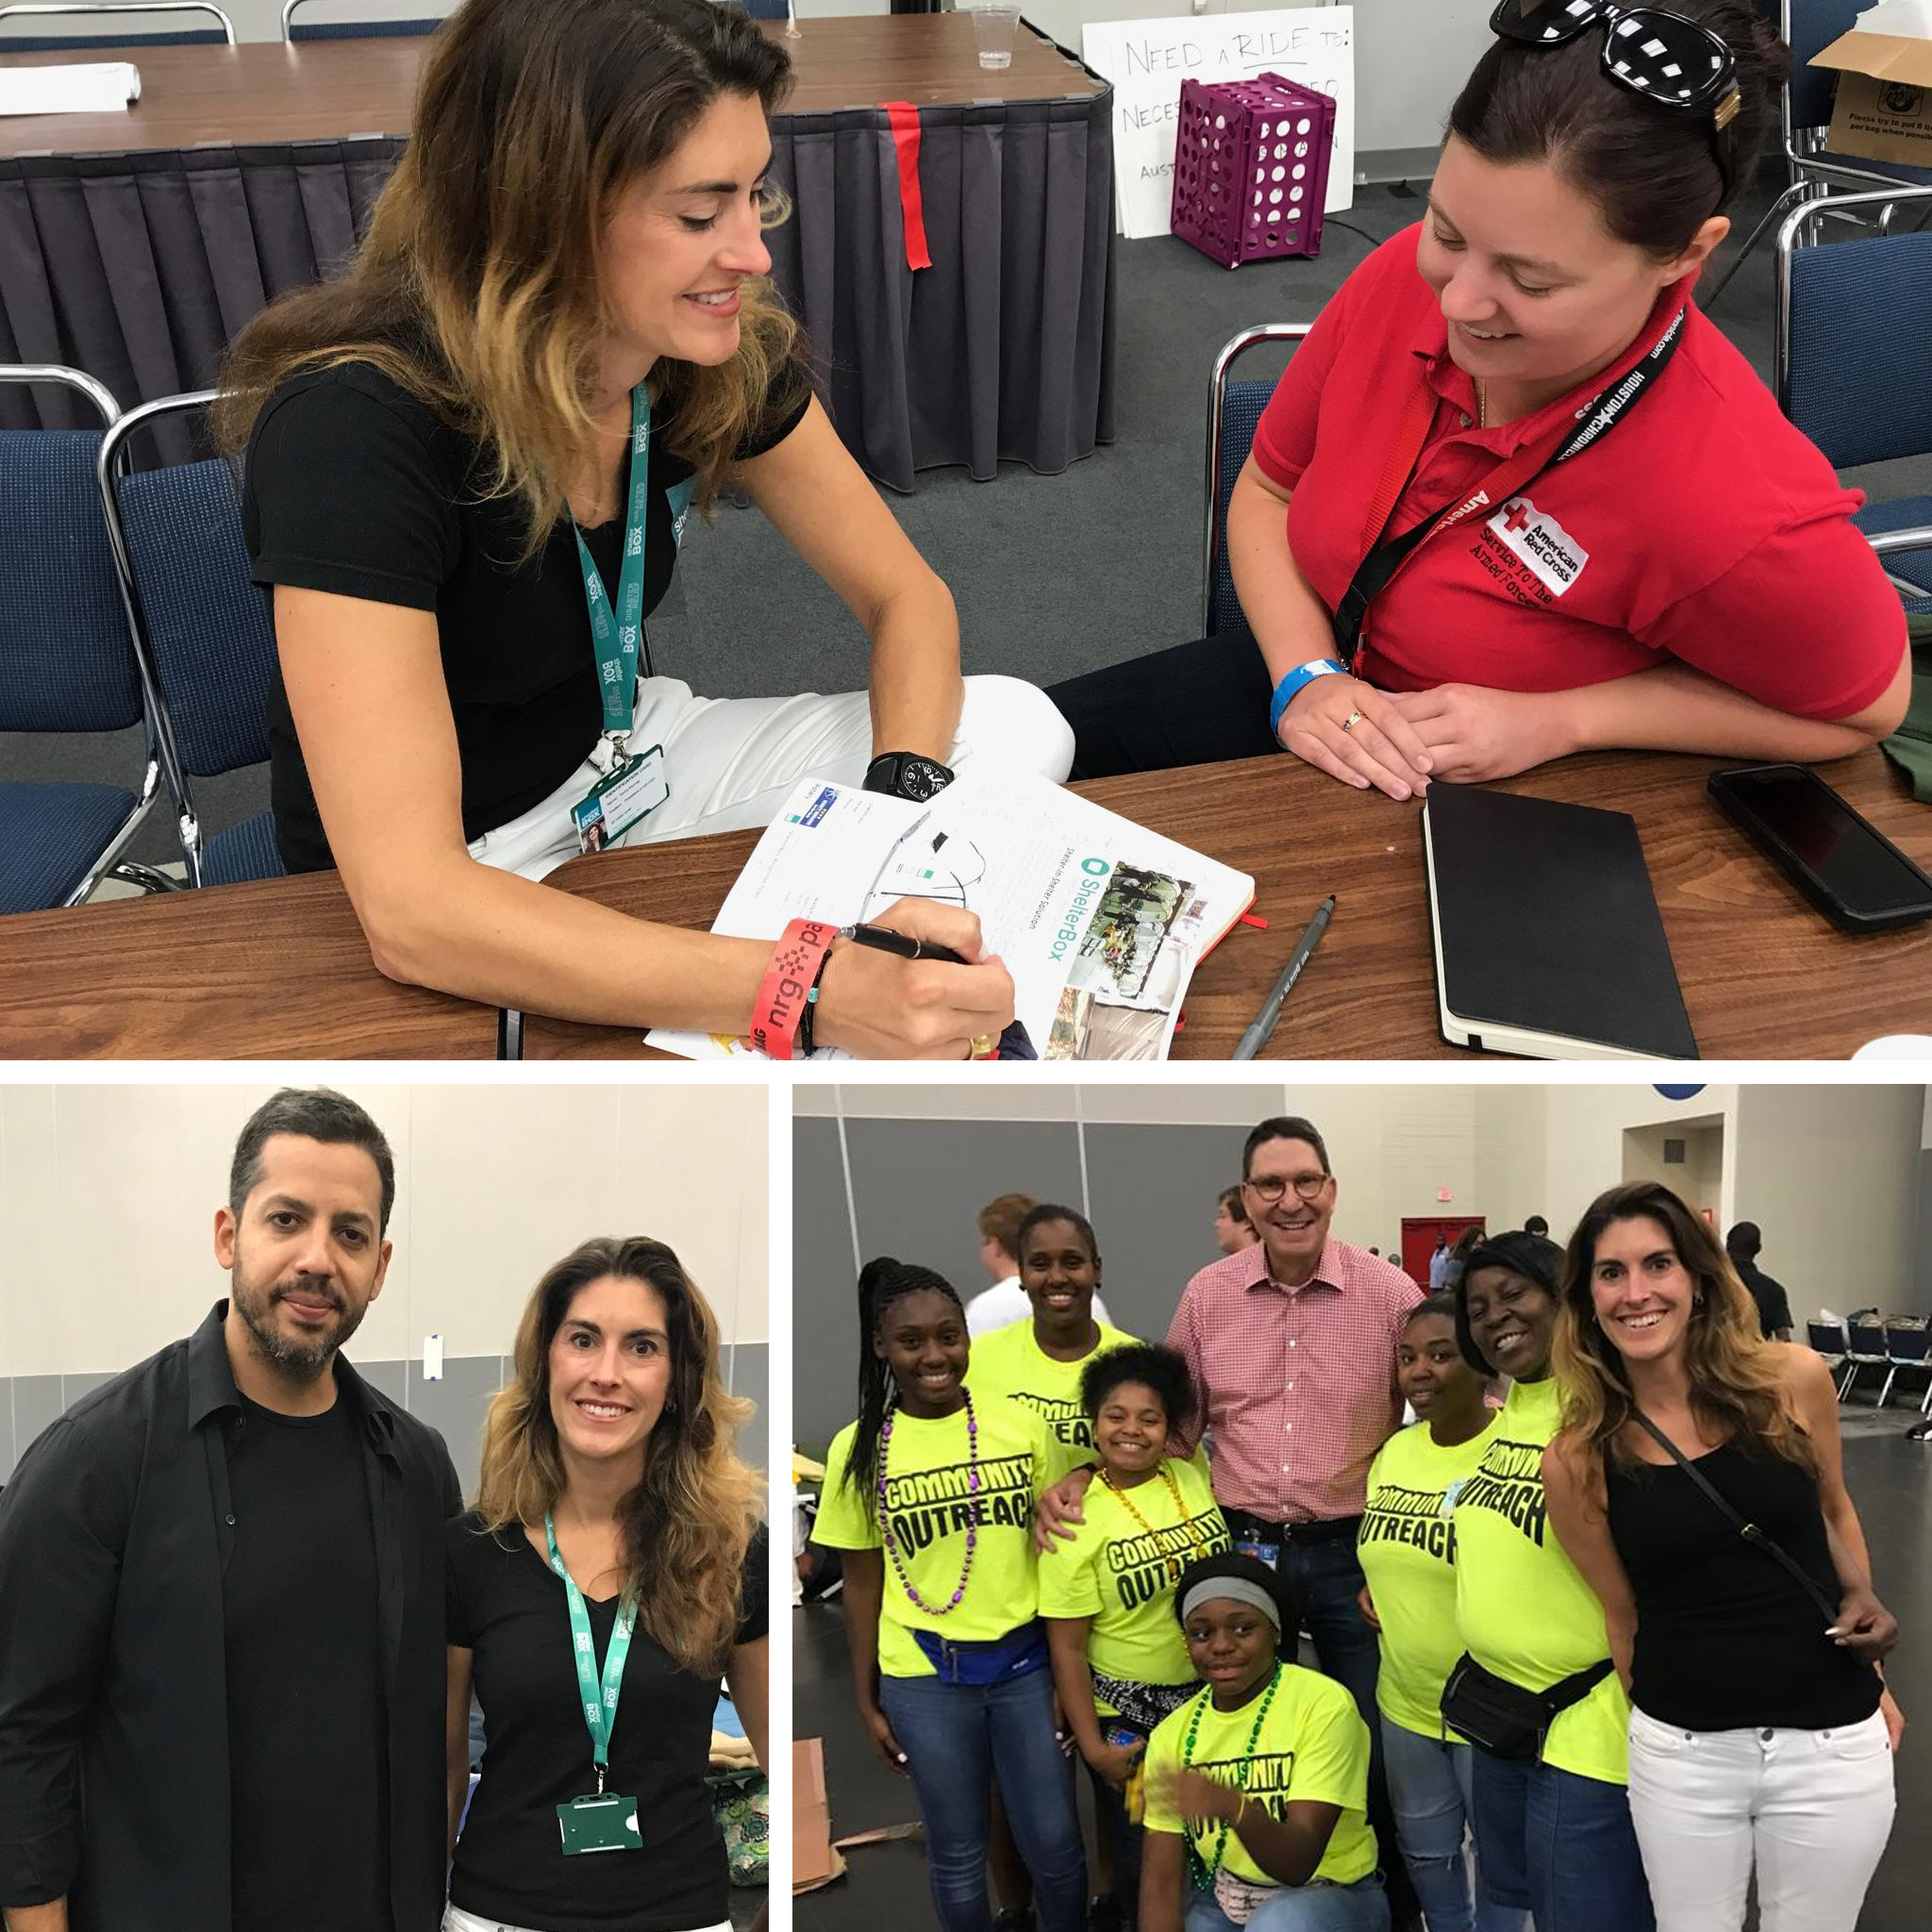 ShelterBox USA President Kerri Murray tours areas impacted by Harvey